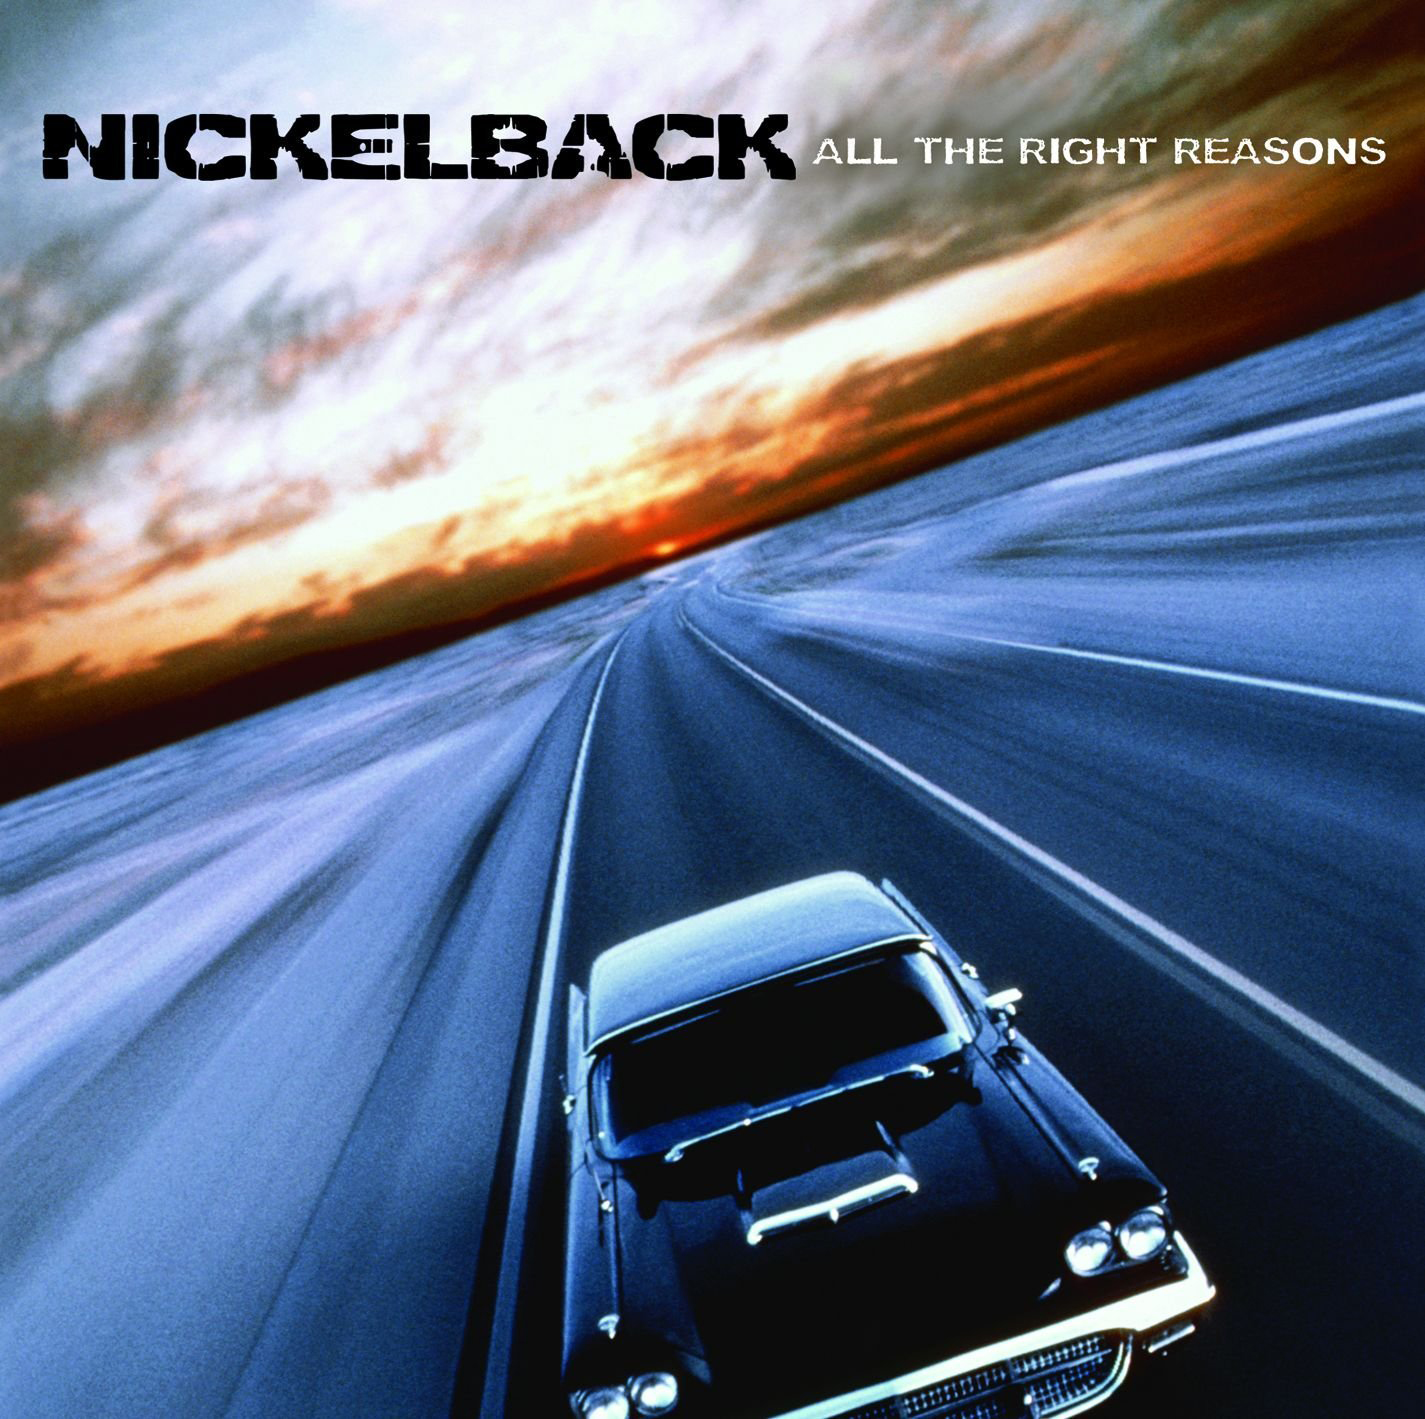 「Photograph」収録アルバム『All the Right Reasons.』/Nickelback